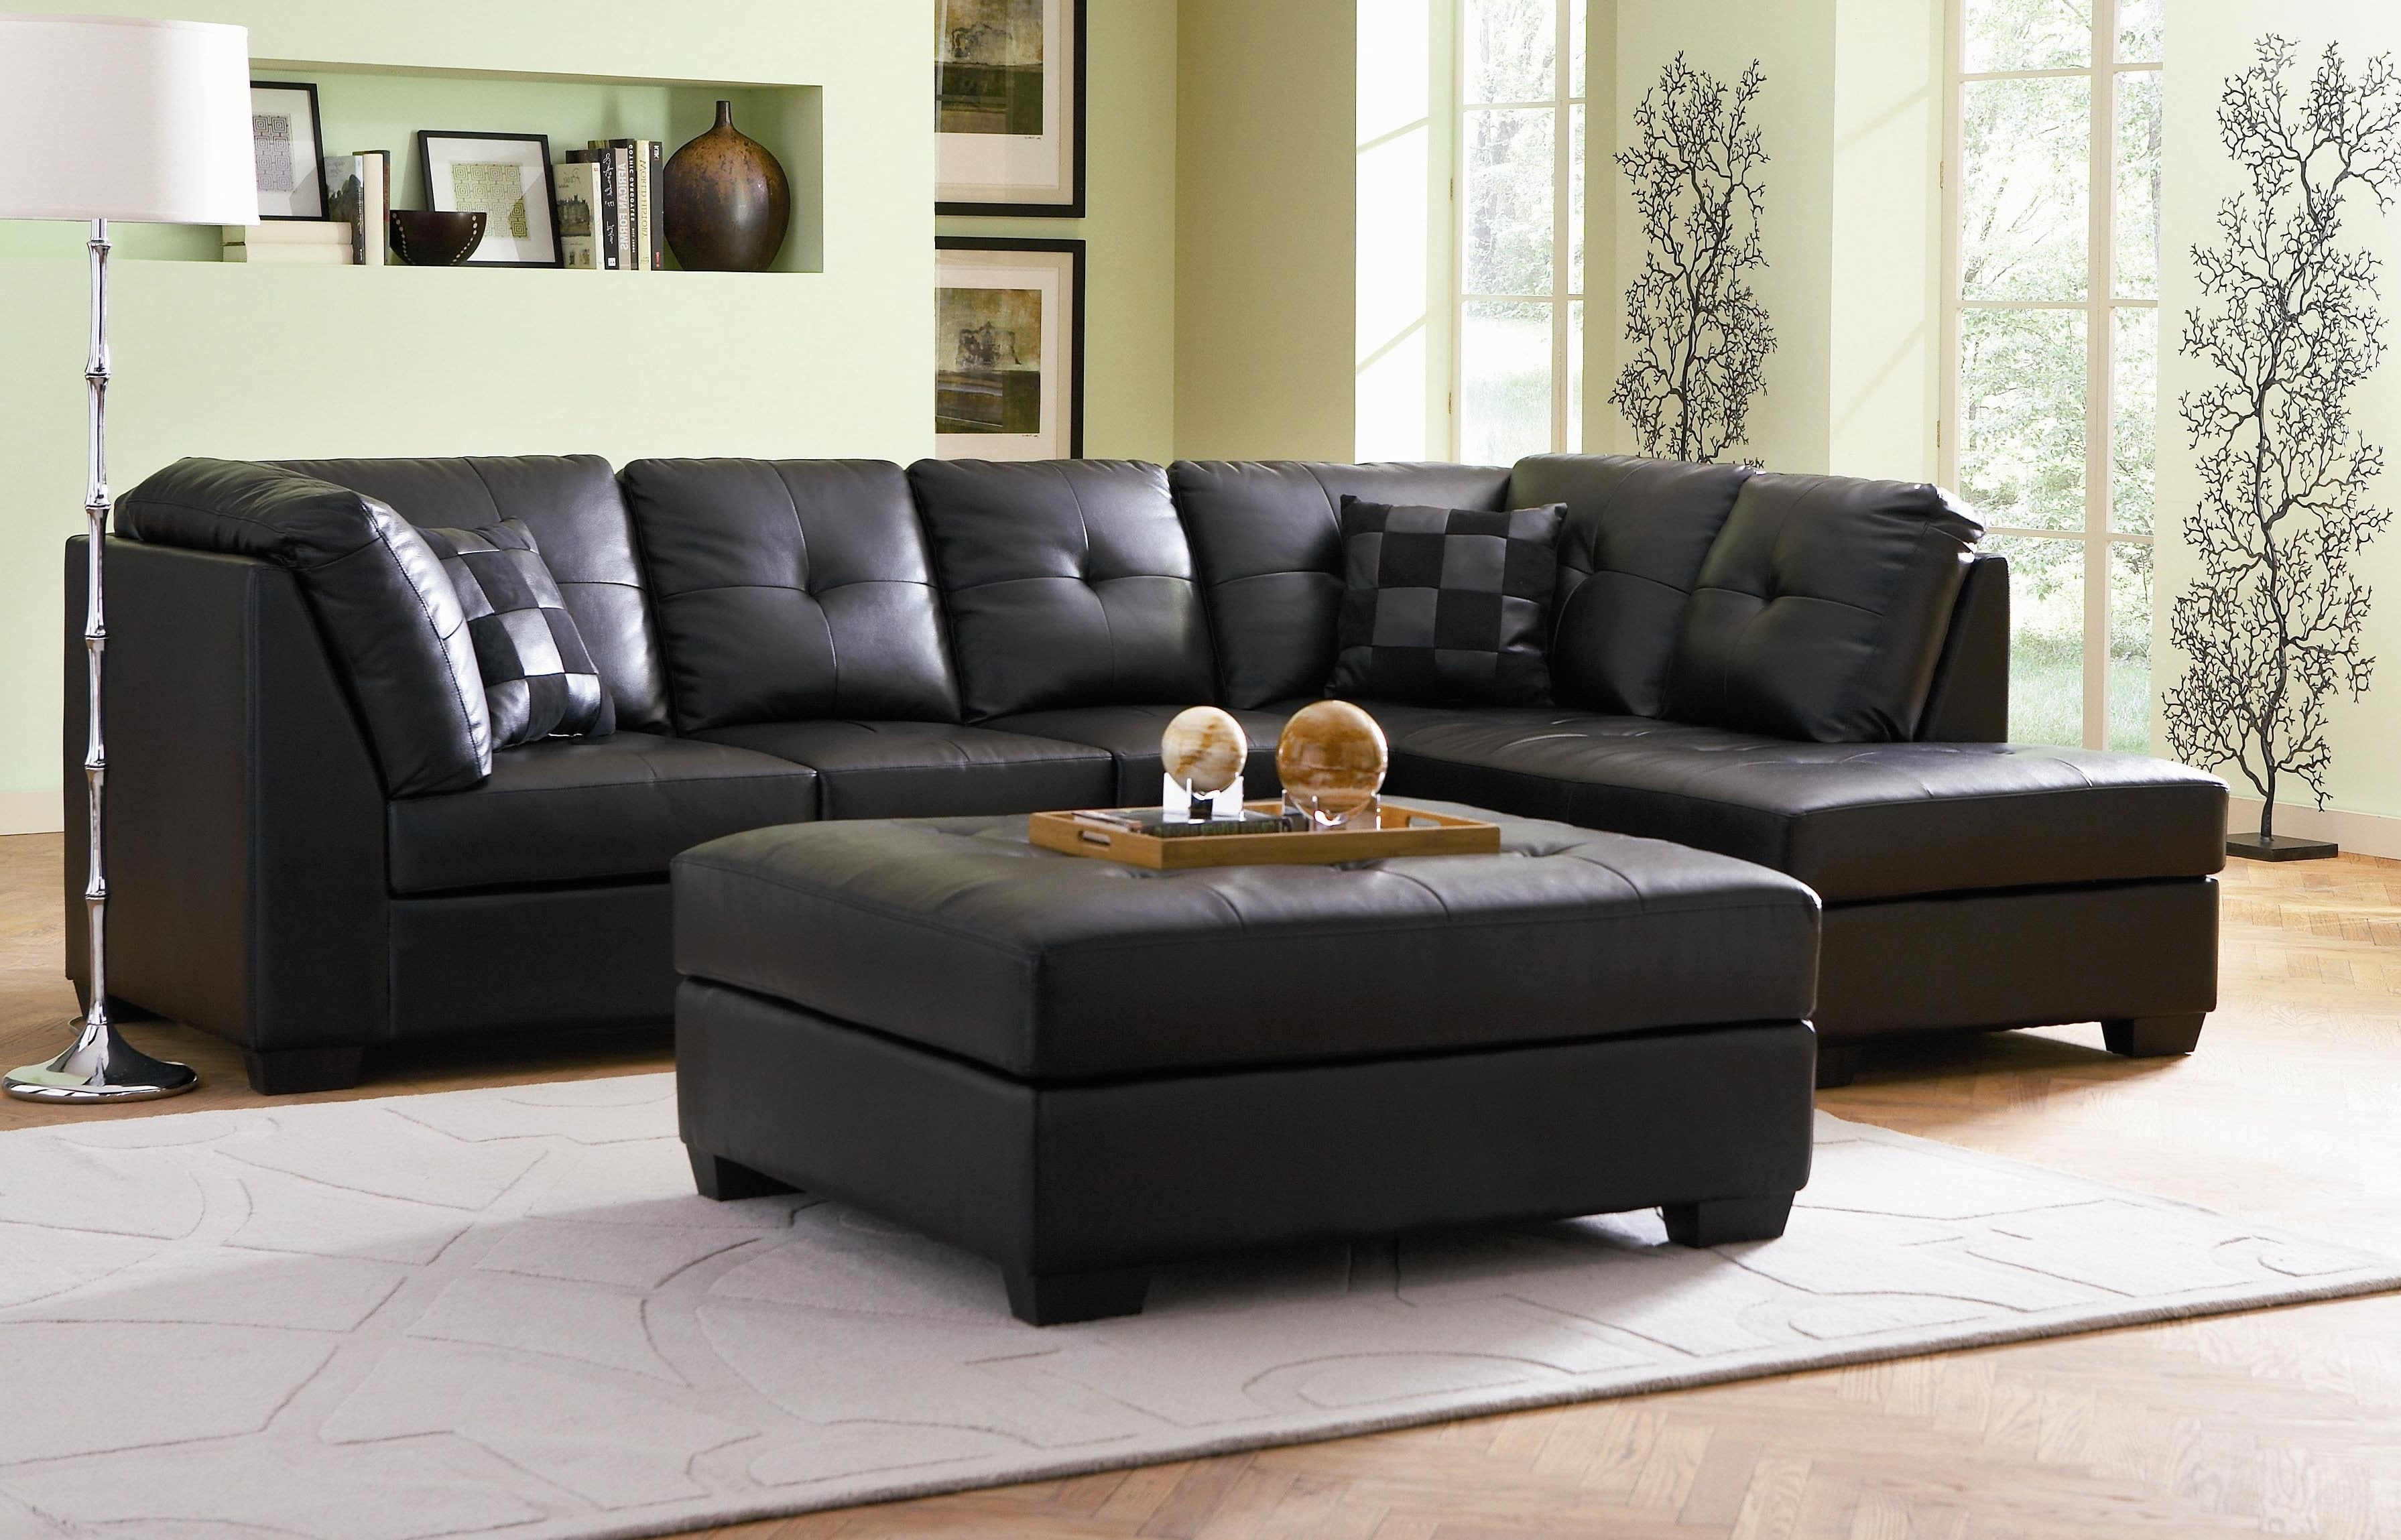 Trendy Photos Sectional Sofas Jacksonville Fl – Buildsimplehome For Jacksonville Fl Sectional Sofas (View 12 of 15)